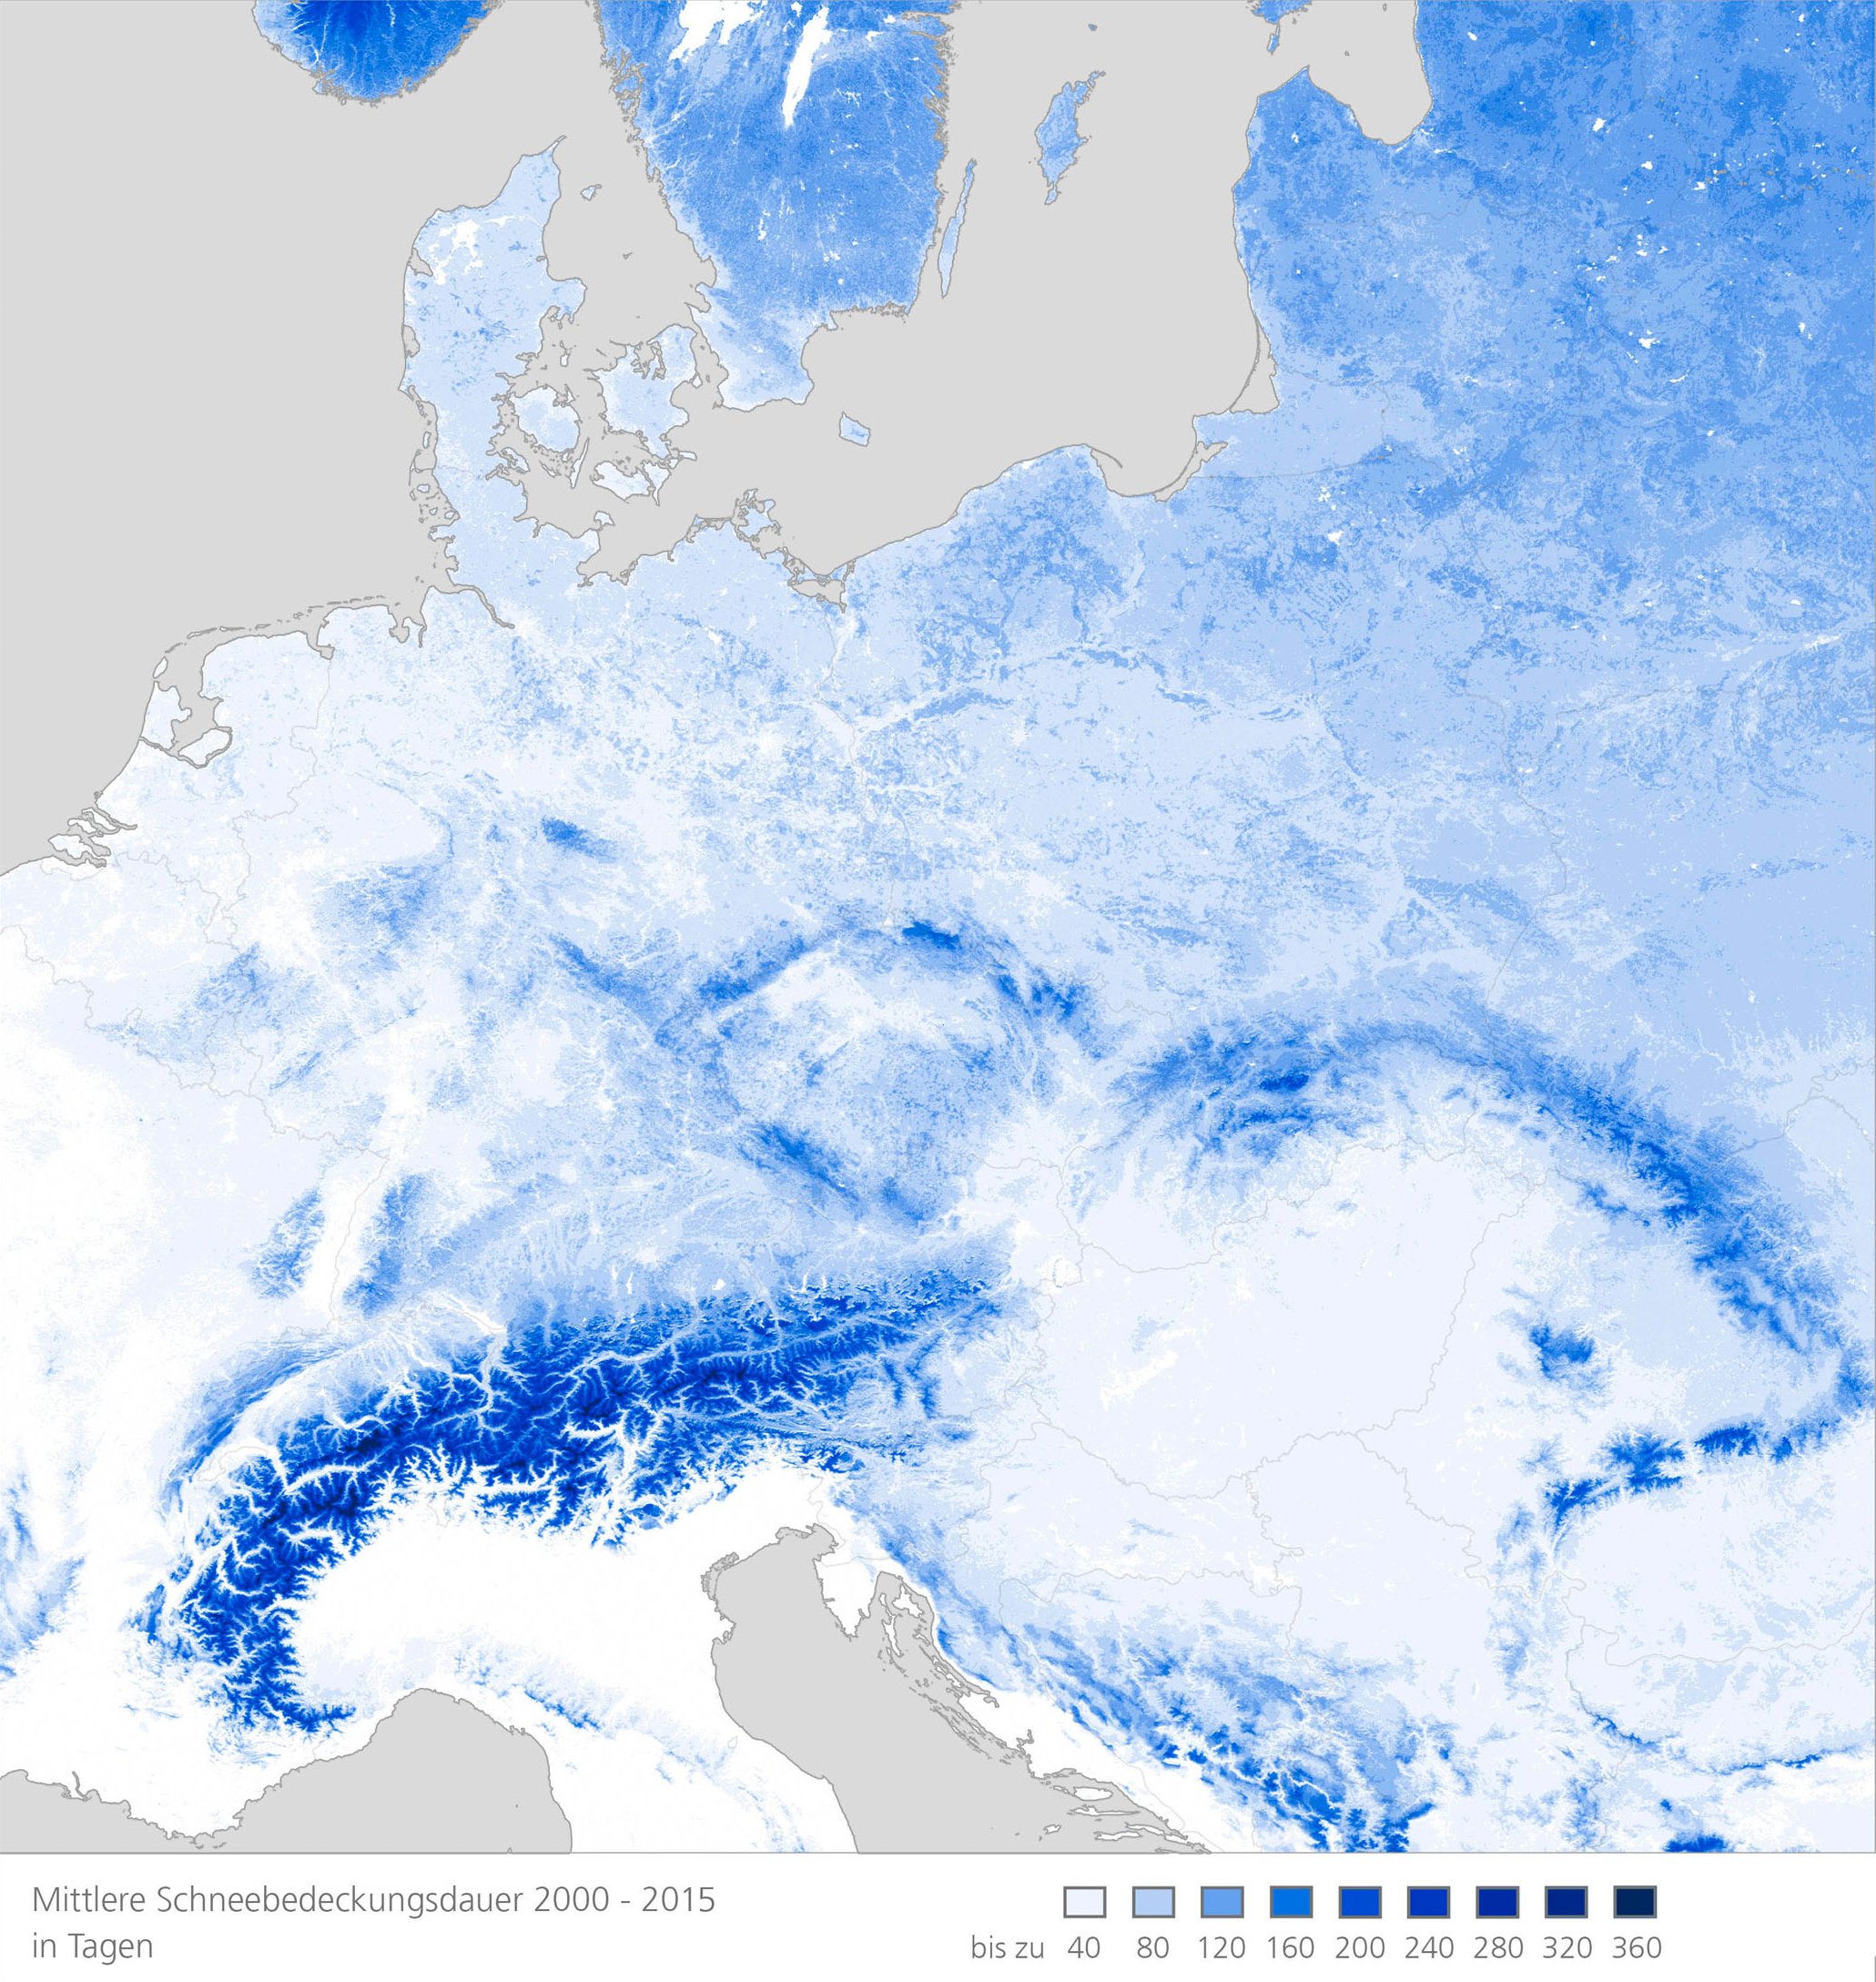 Mean Snow Cover Duration In Central Europe